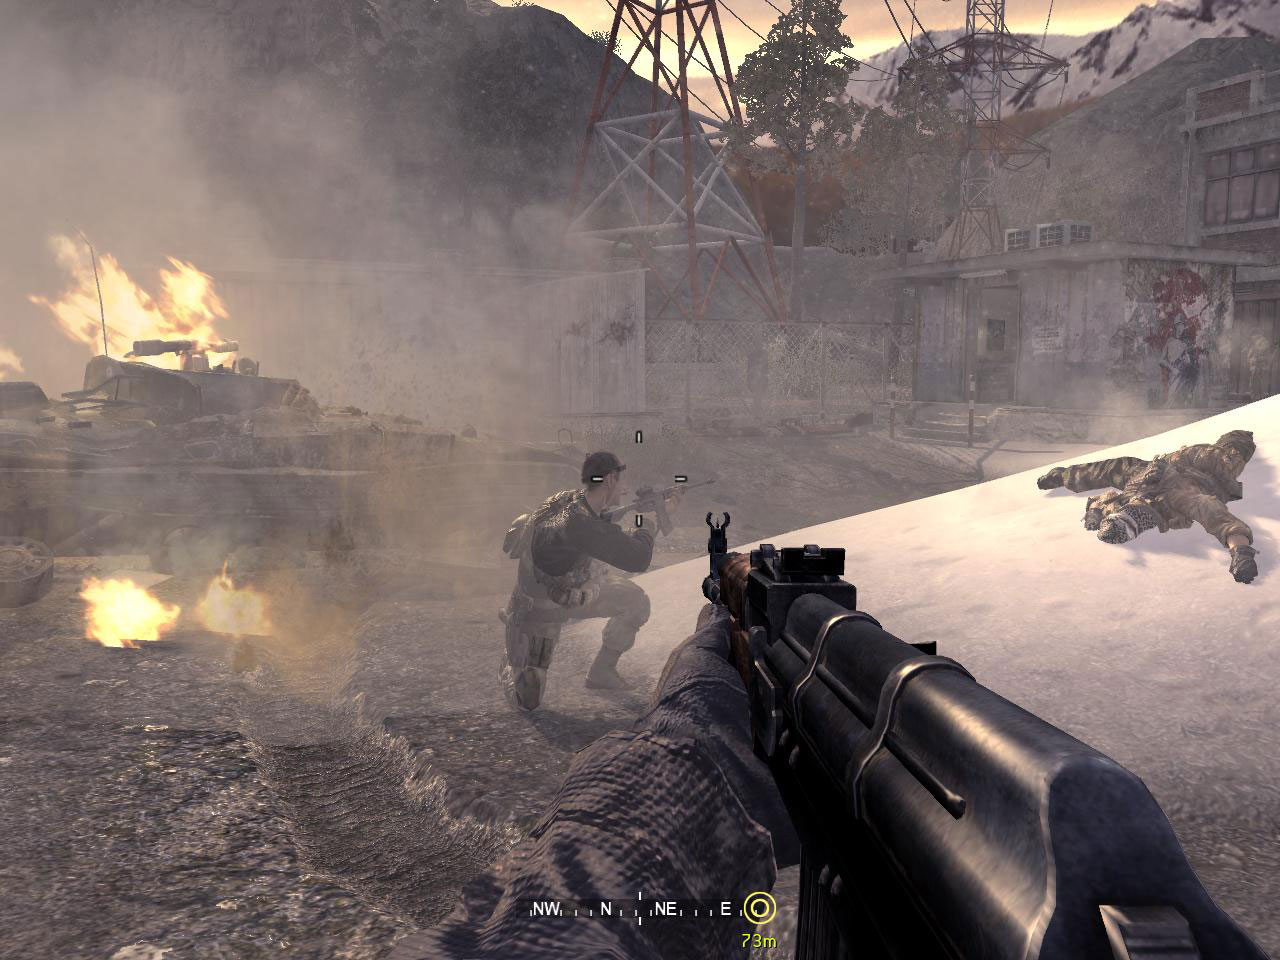 Call Of Duty 4 Multiplayer Only Download